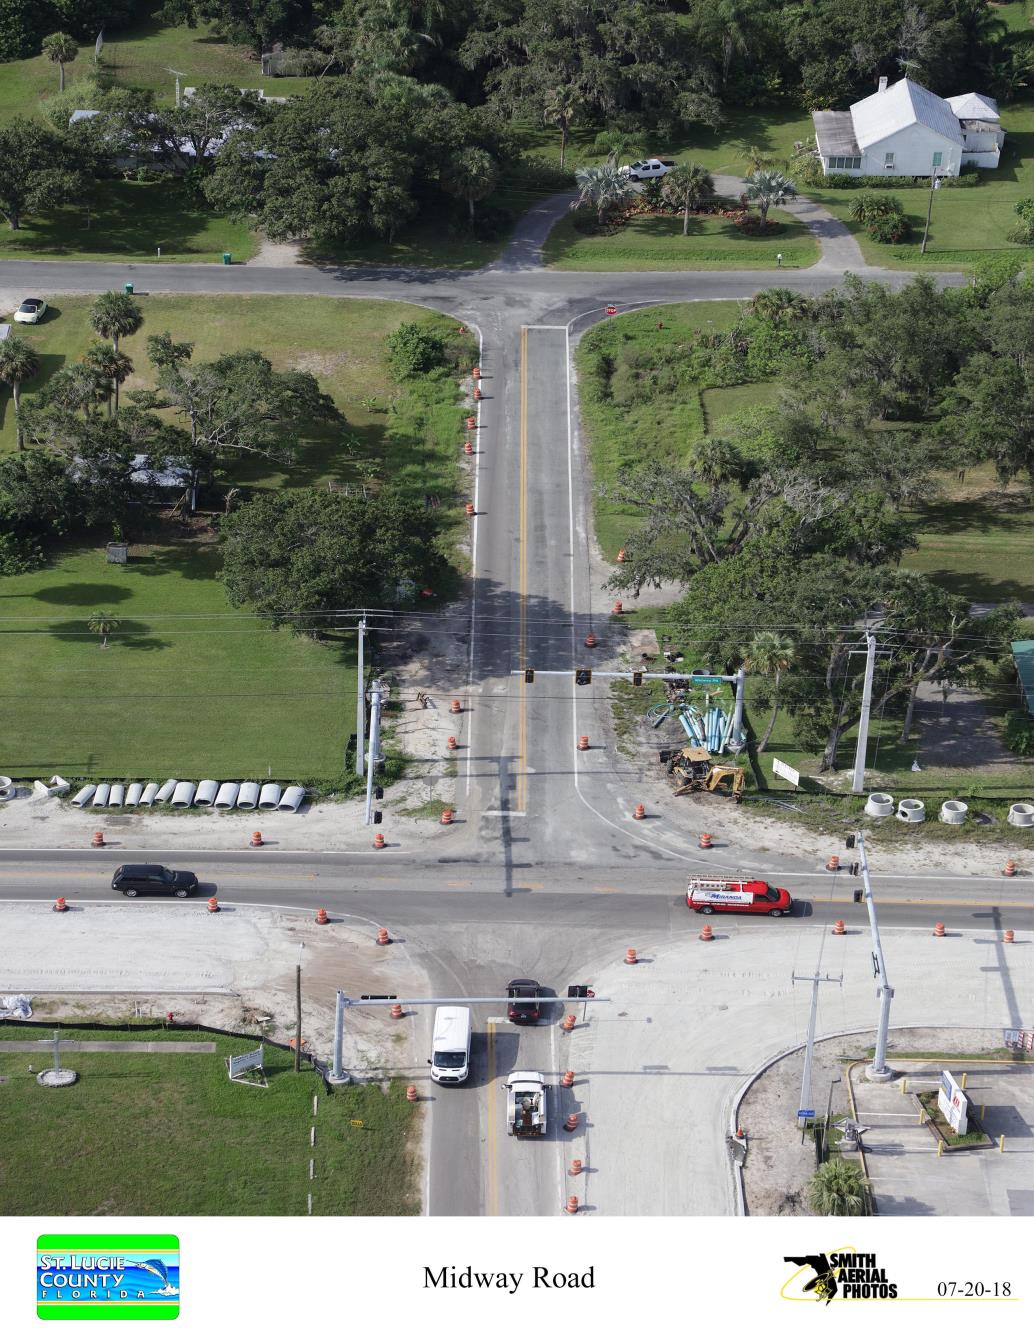 Intersection of Sunrise Blvd and Midway Rd from North